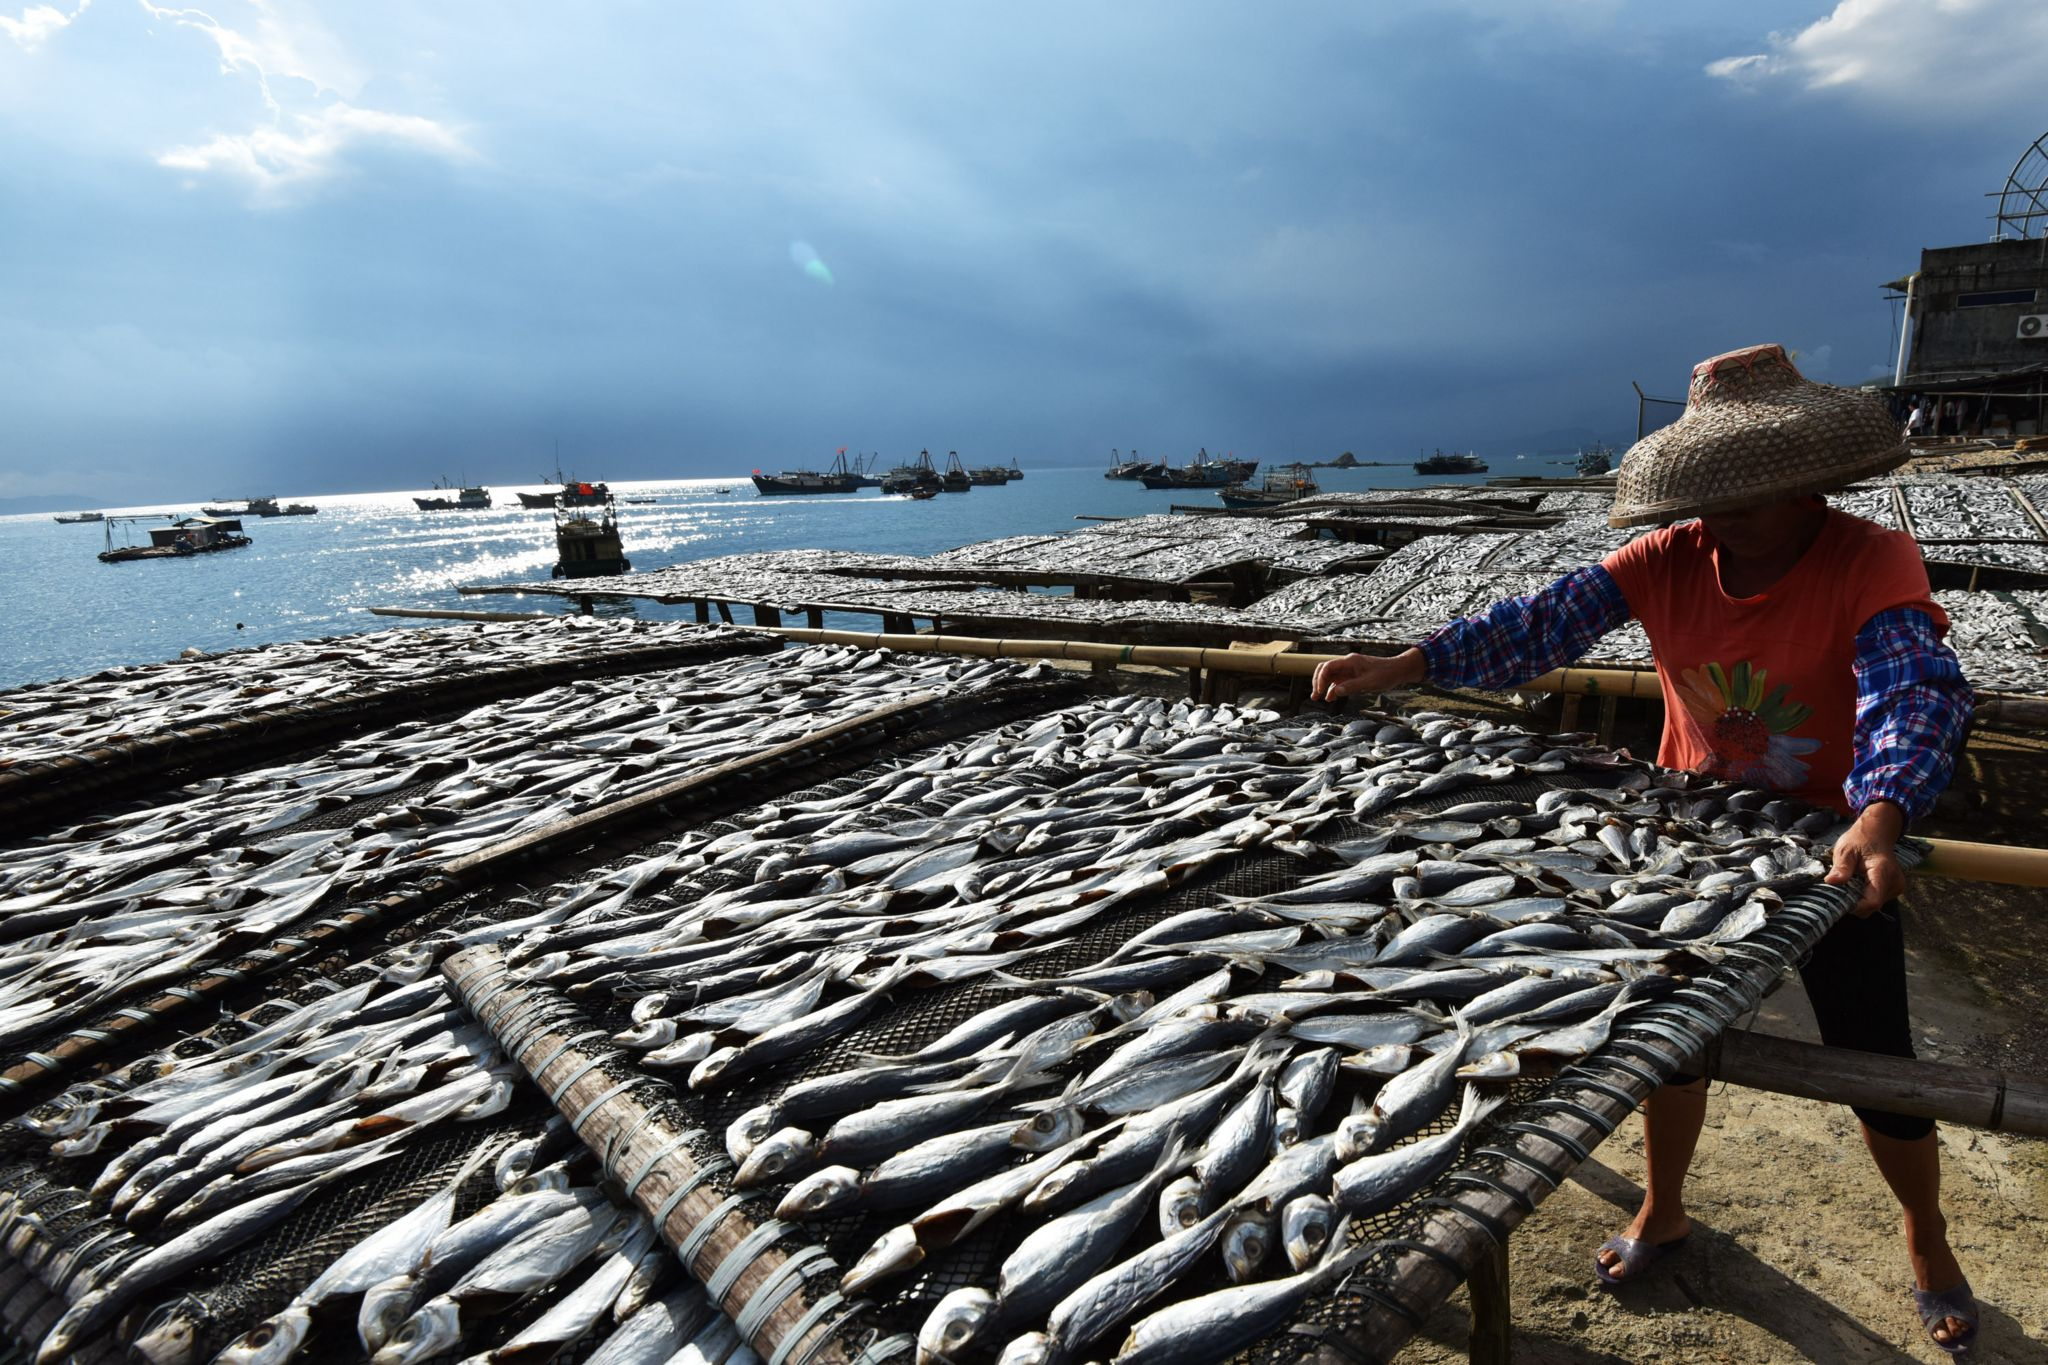 A woman drying fish in the sun in Shenzhen, China's southern Guangdong province. (September 9, 2017)